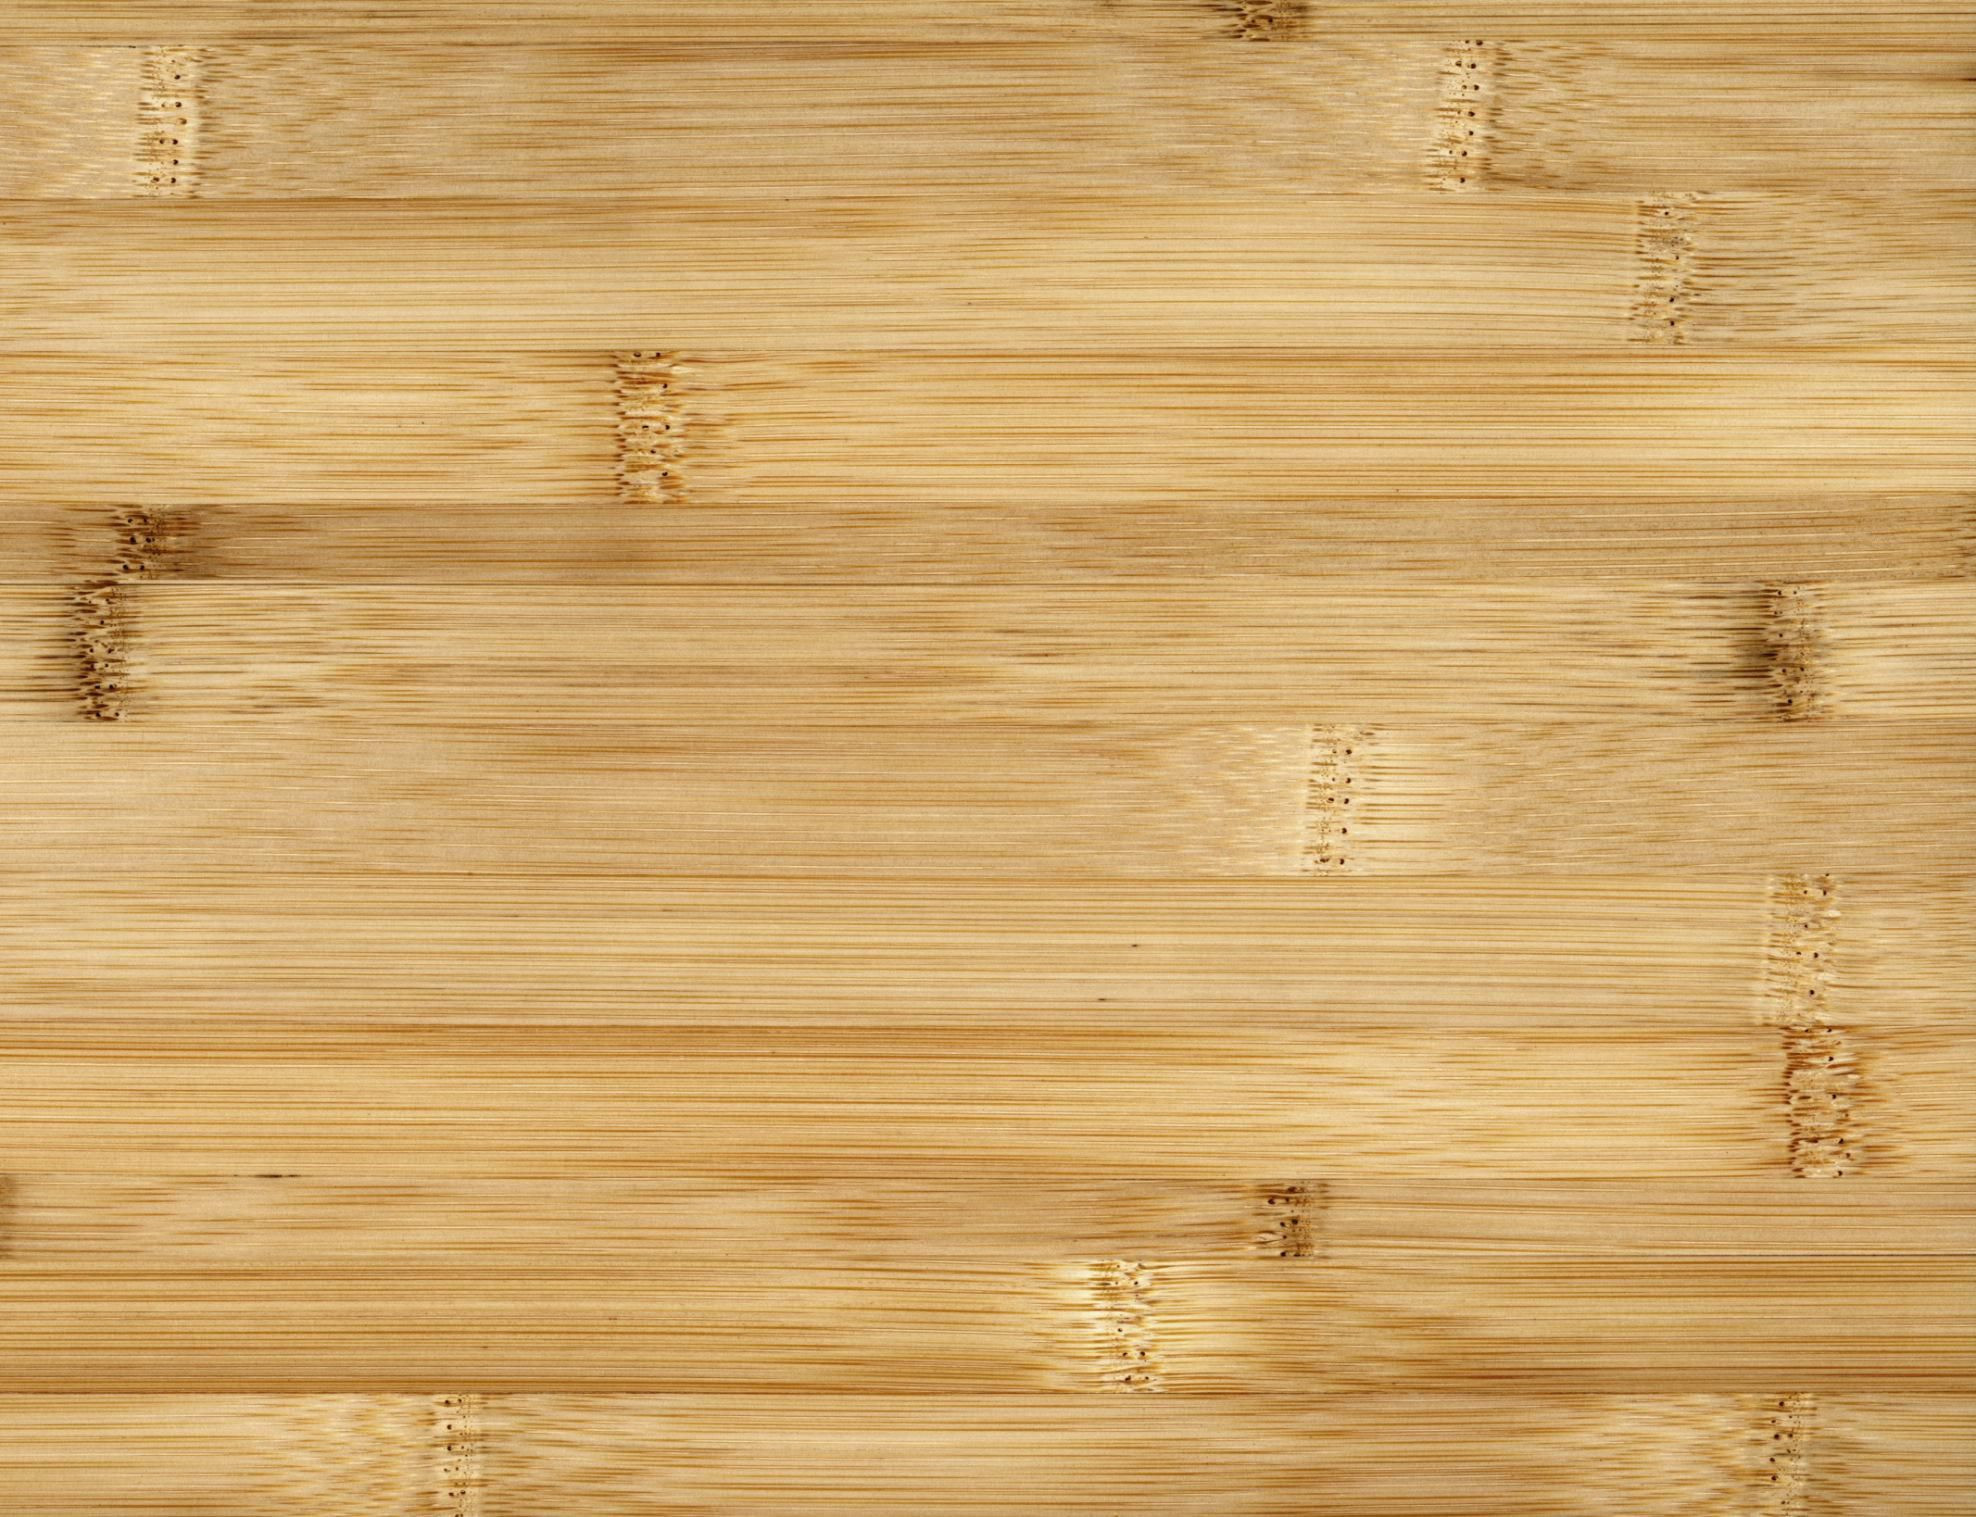 hardwood floor repair diy of how to clean bamboo flooring inside 200266305 001 56a2fd815f9b58b7d0d000cd